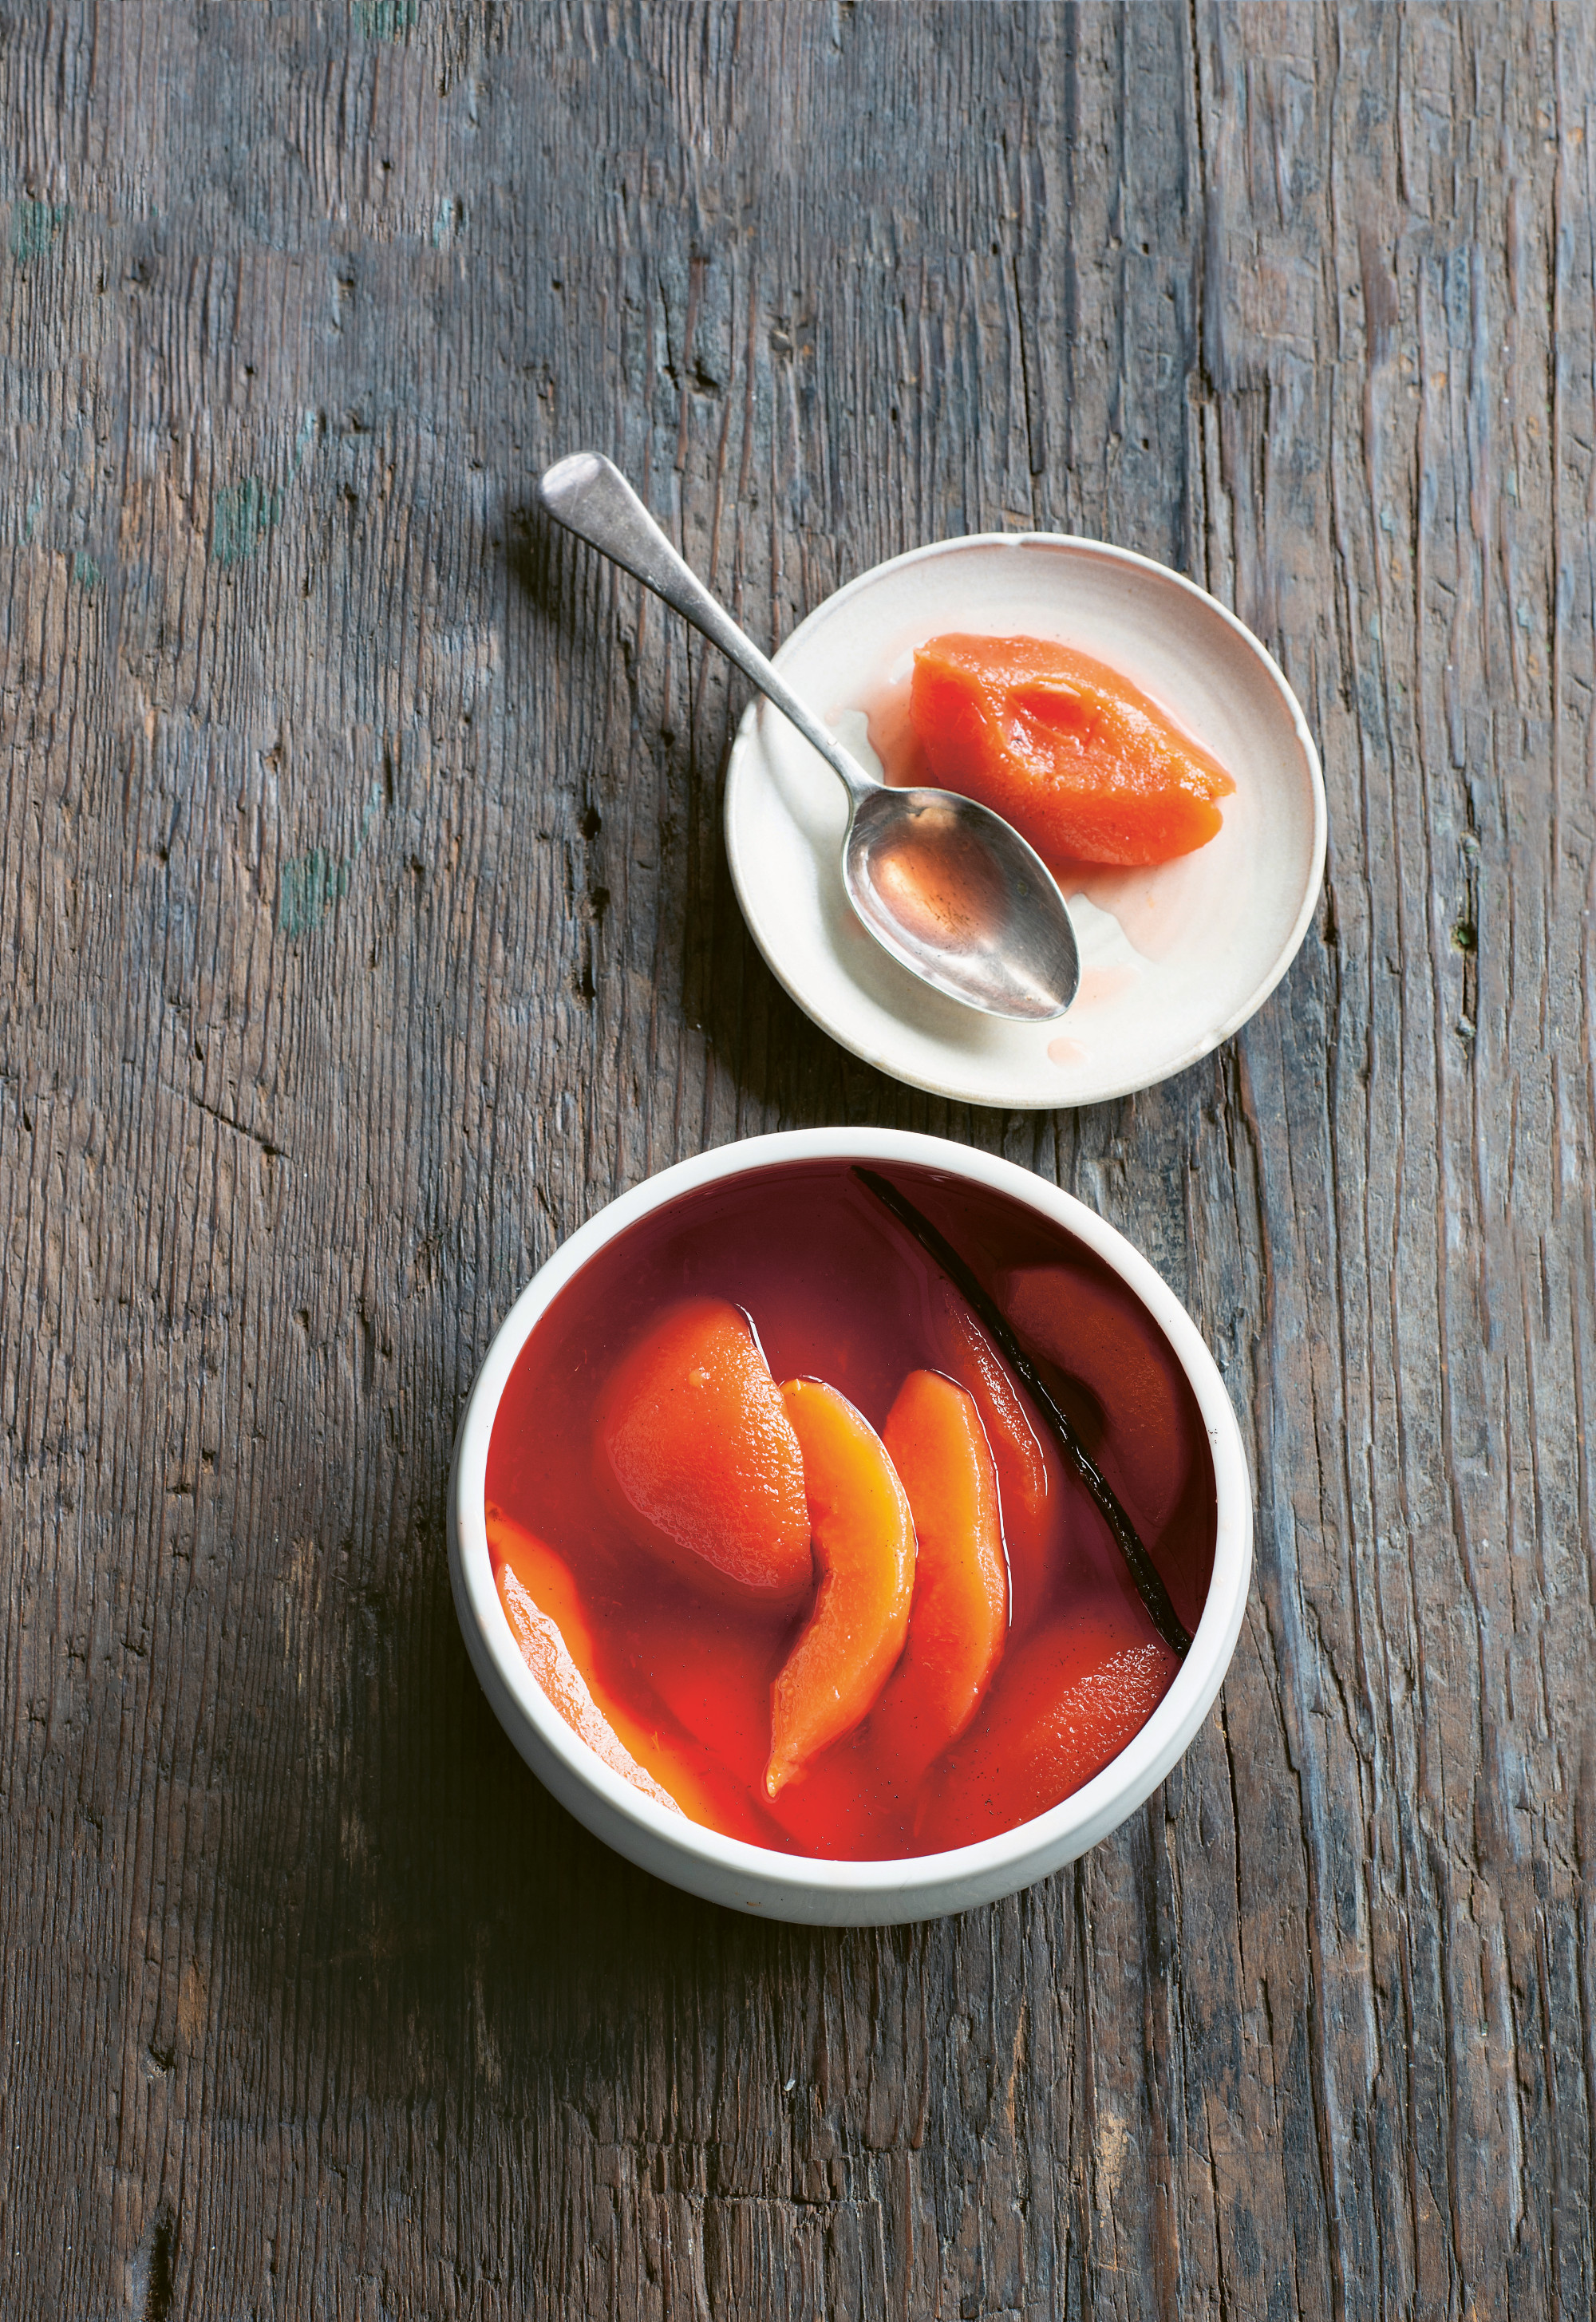 Australia in 5 unusual dishes: Poached Quince